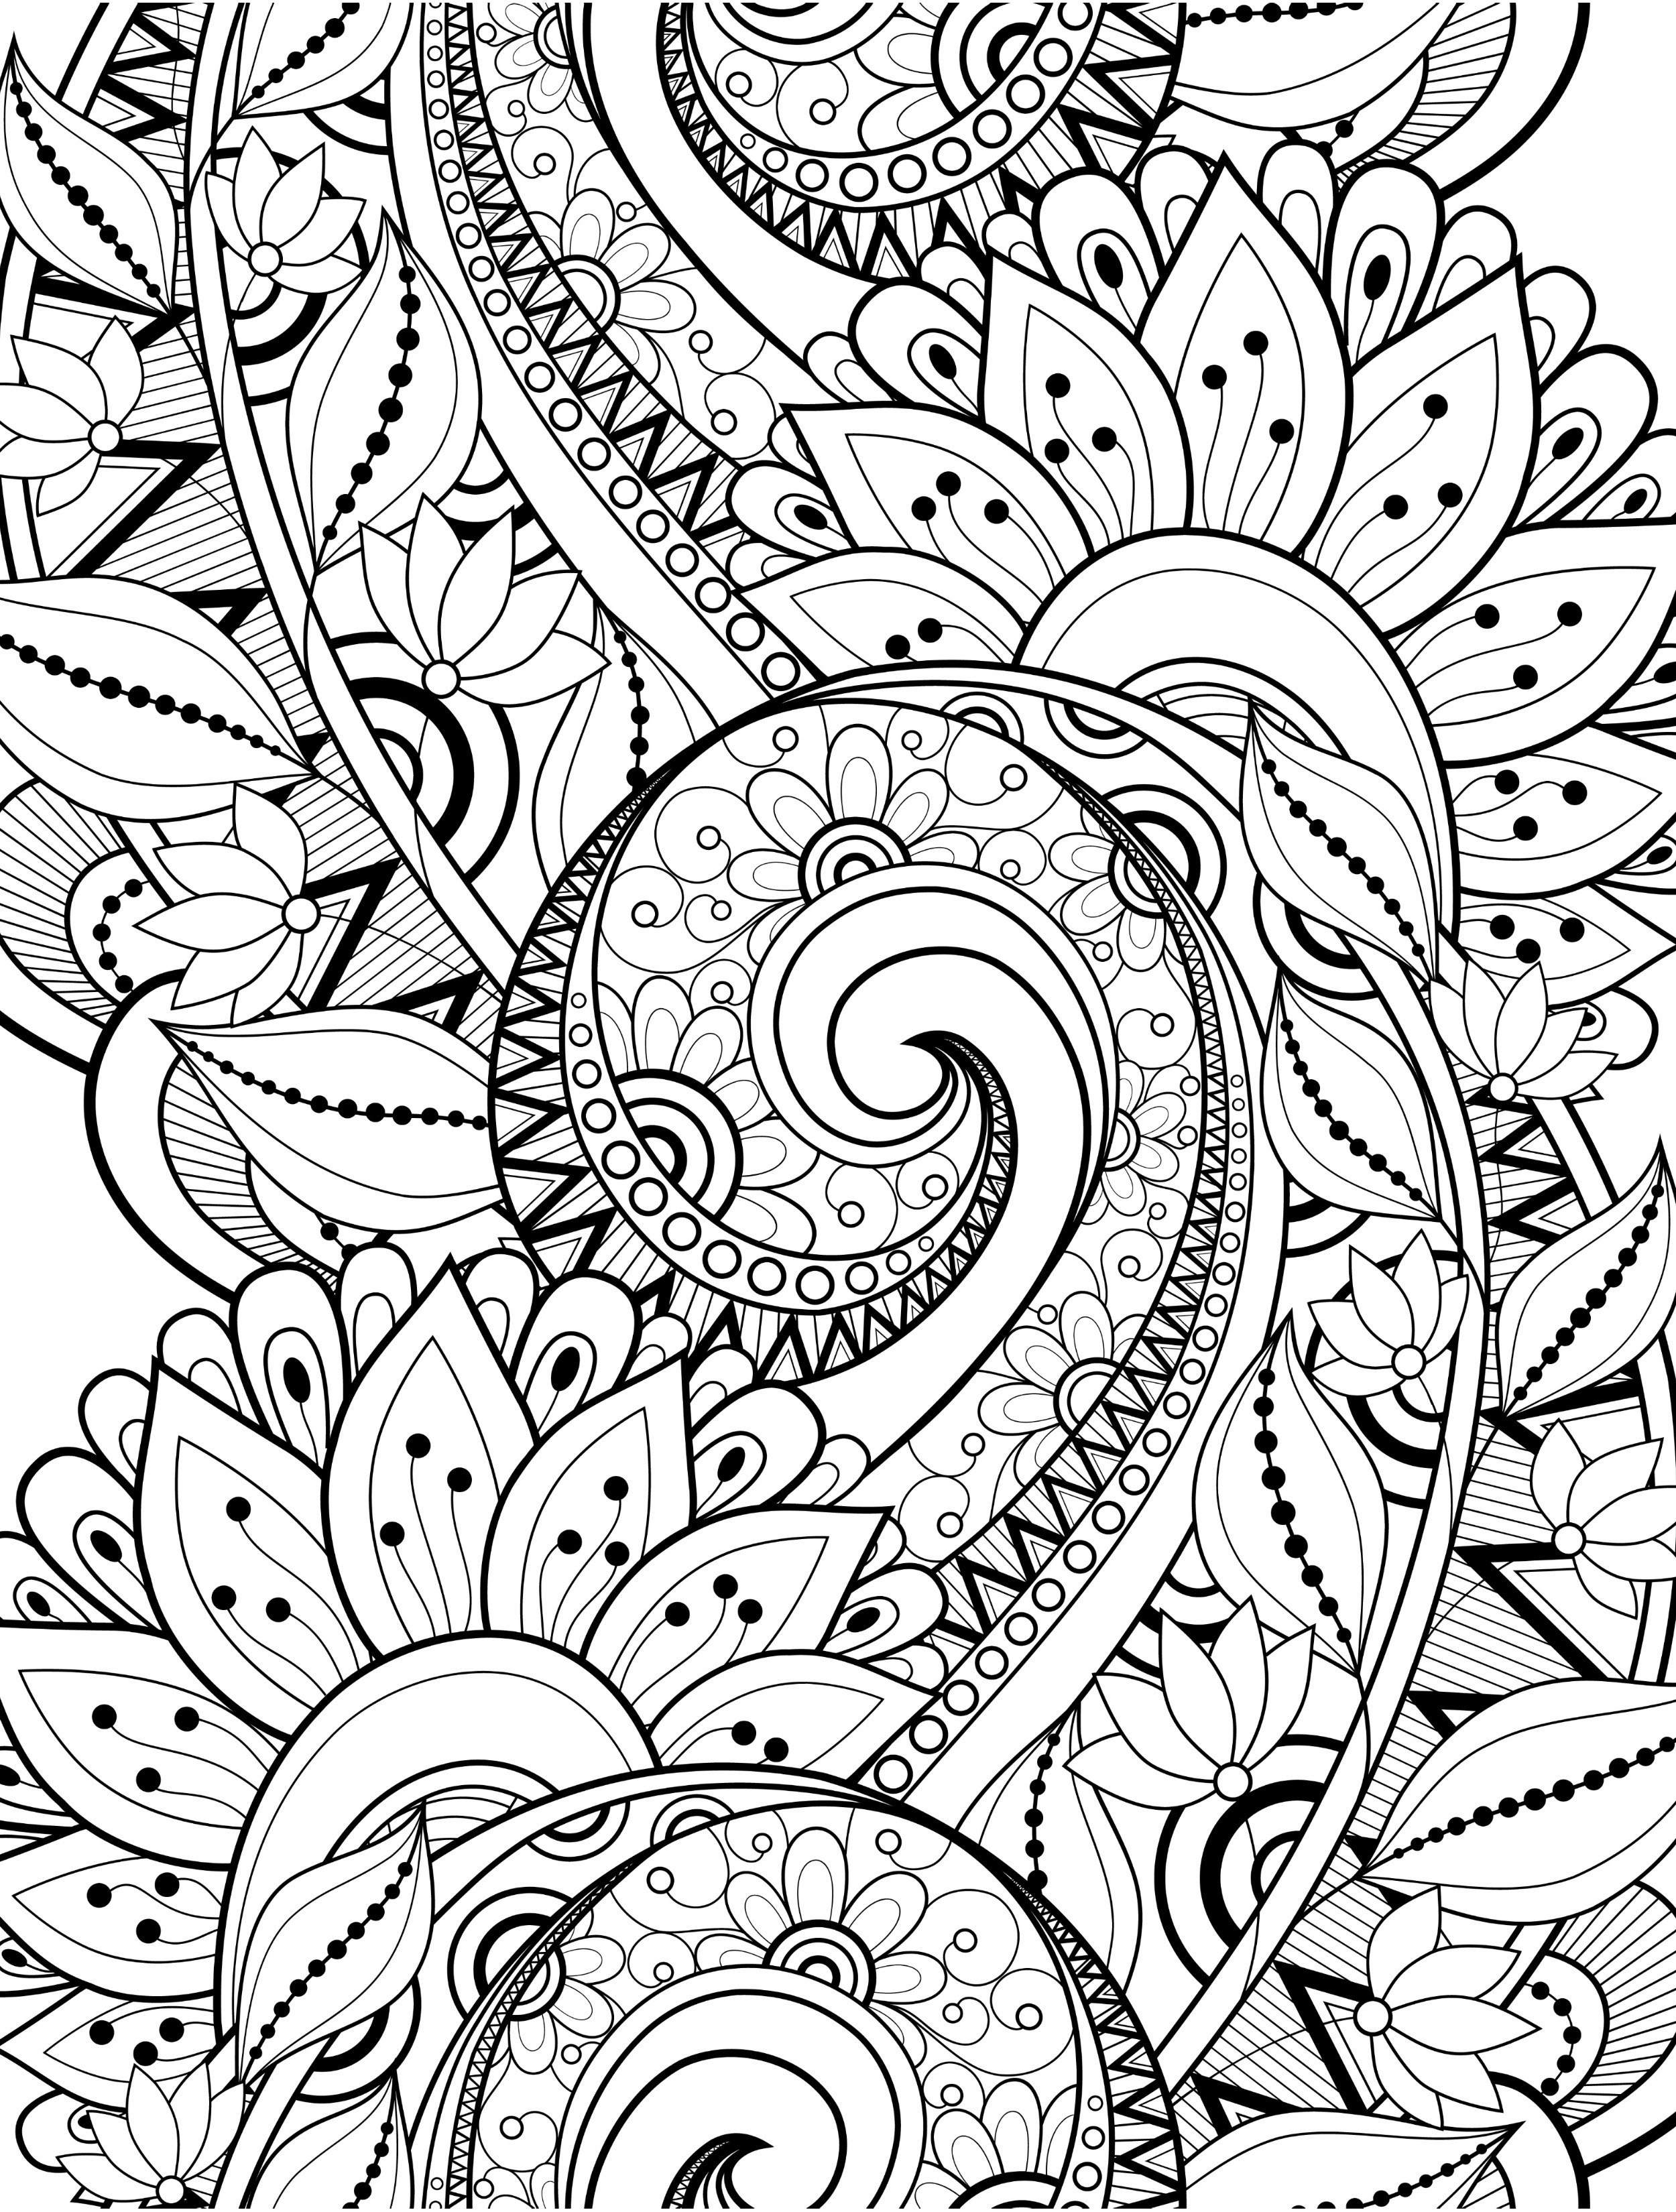 2500x3300 Busy Coloring Pages To Help Adults Relax Upload Abigail